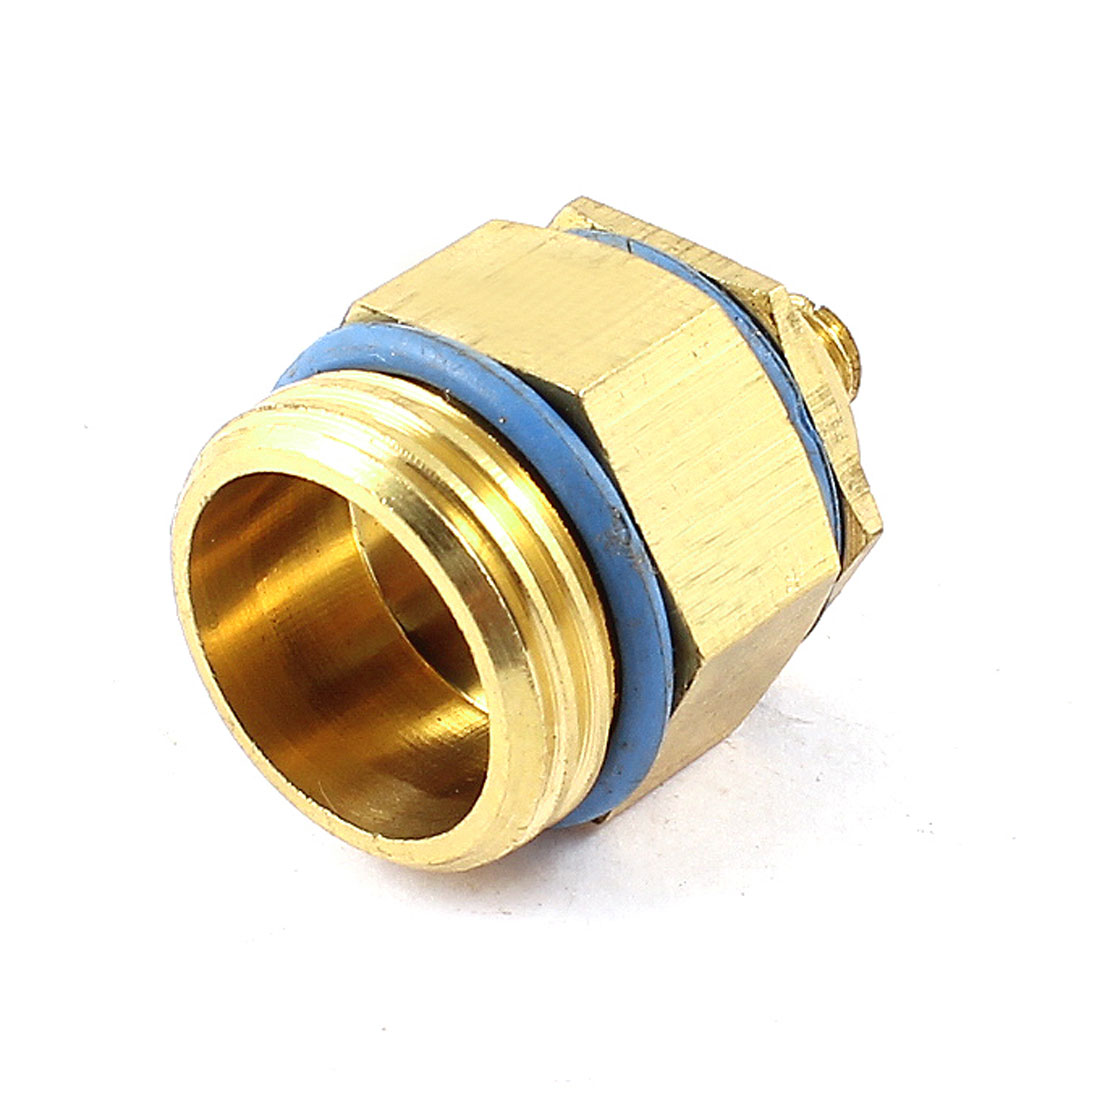 20mm Thread Gold Tone Blue 180 Degrees Spray Angle Nozzle for Garden